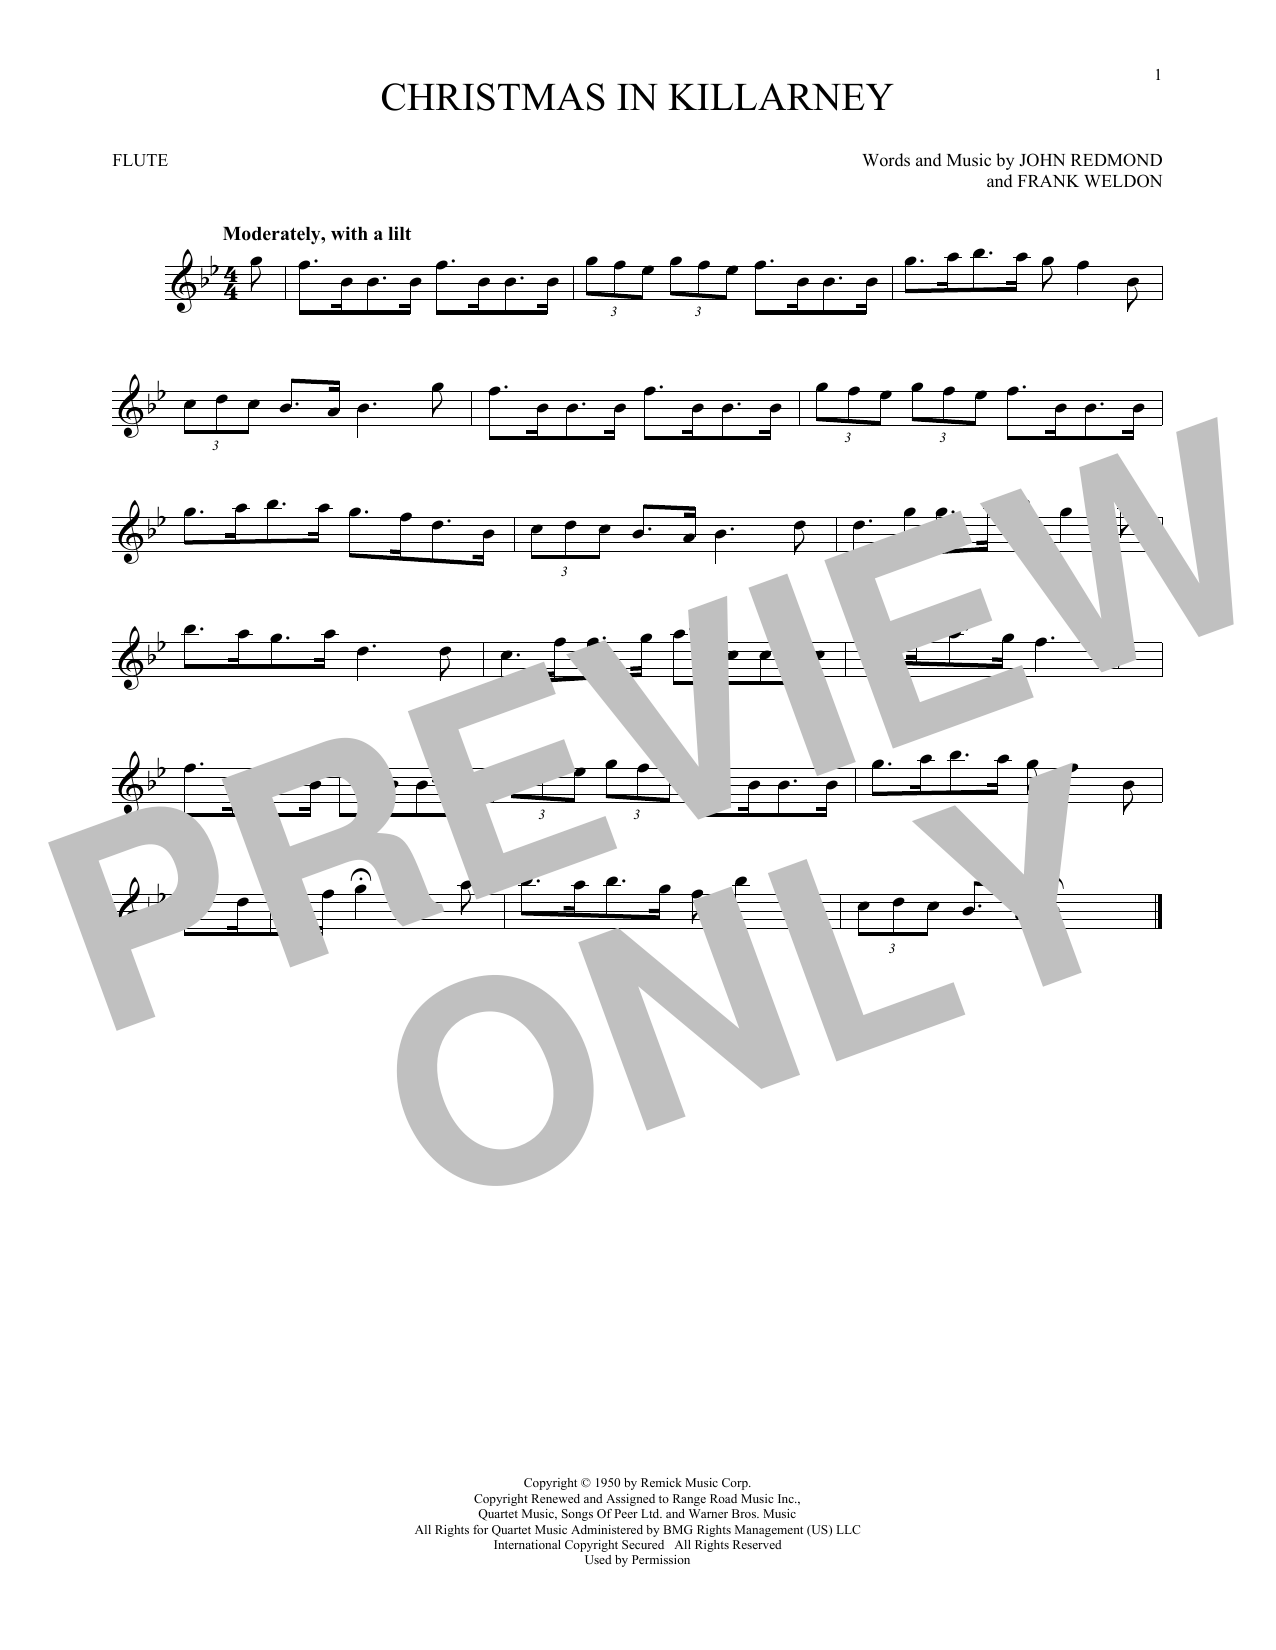 Christmas Trumpet Songs.John Redmond Frank Weldon Christmas In Killarney Sheet Music Notes Chords Download Printable Trumpet Solo Sku 418133